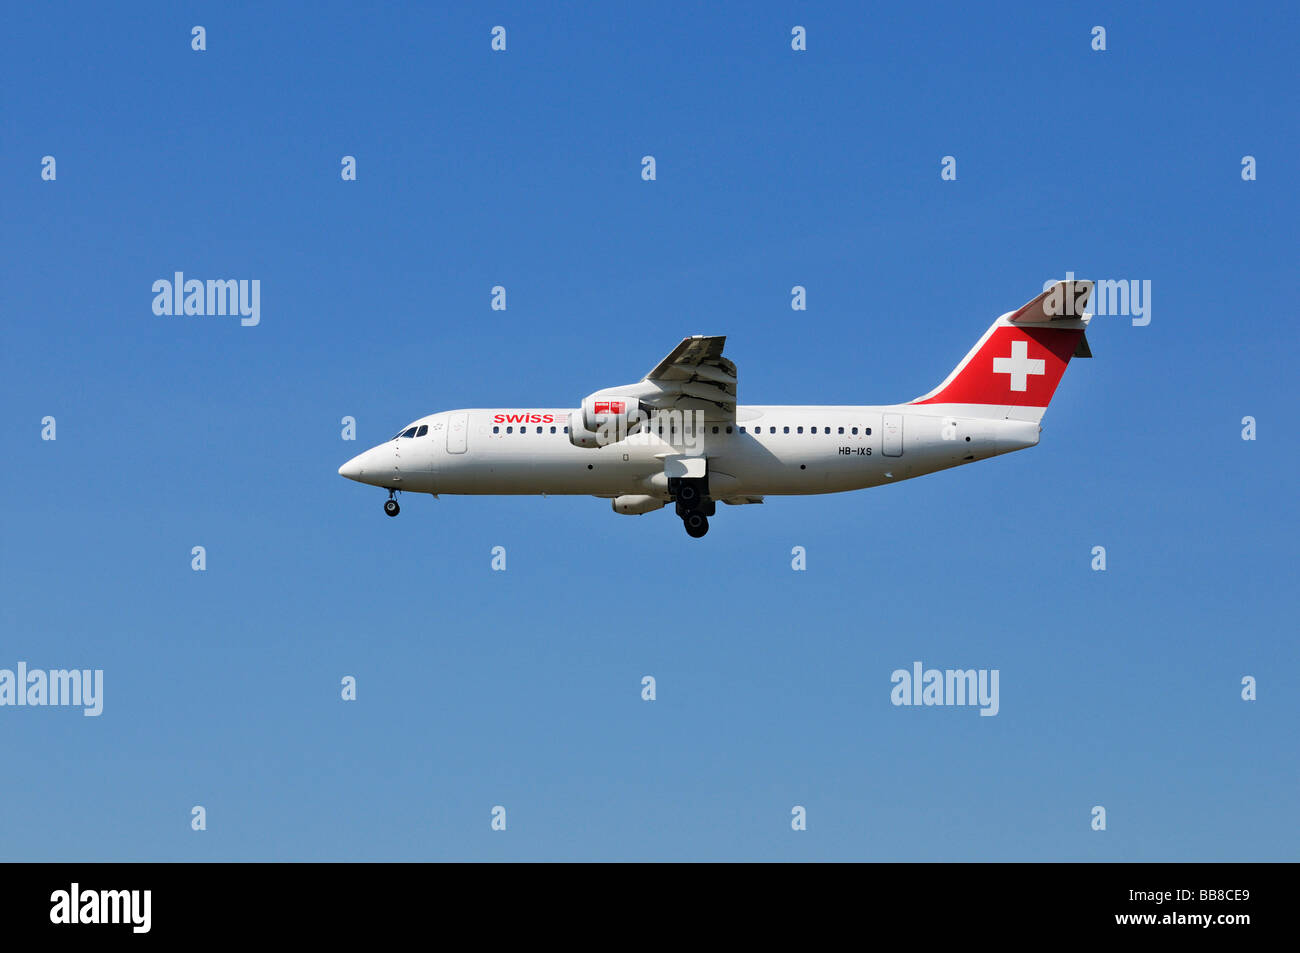 L'air Suisse Suisse avion Avro RJ100 Jet Régional est en train de pivoter sur son train d'atterrissage Photo Stock